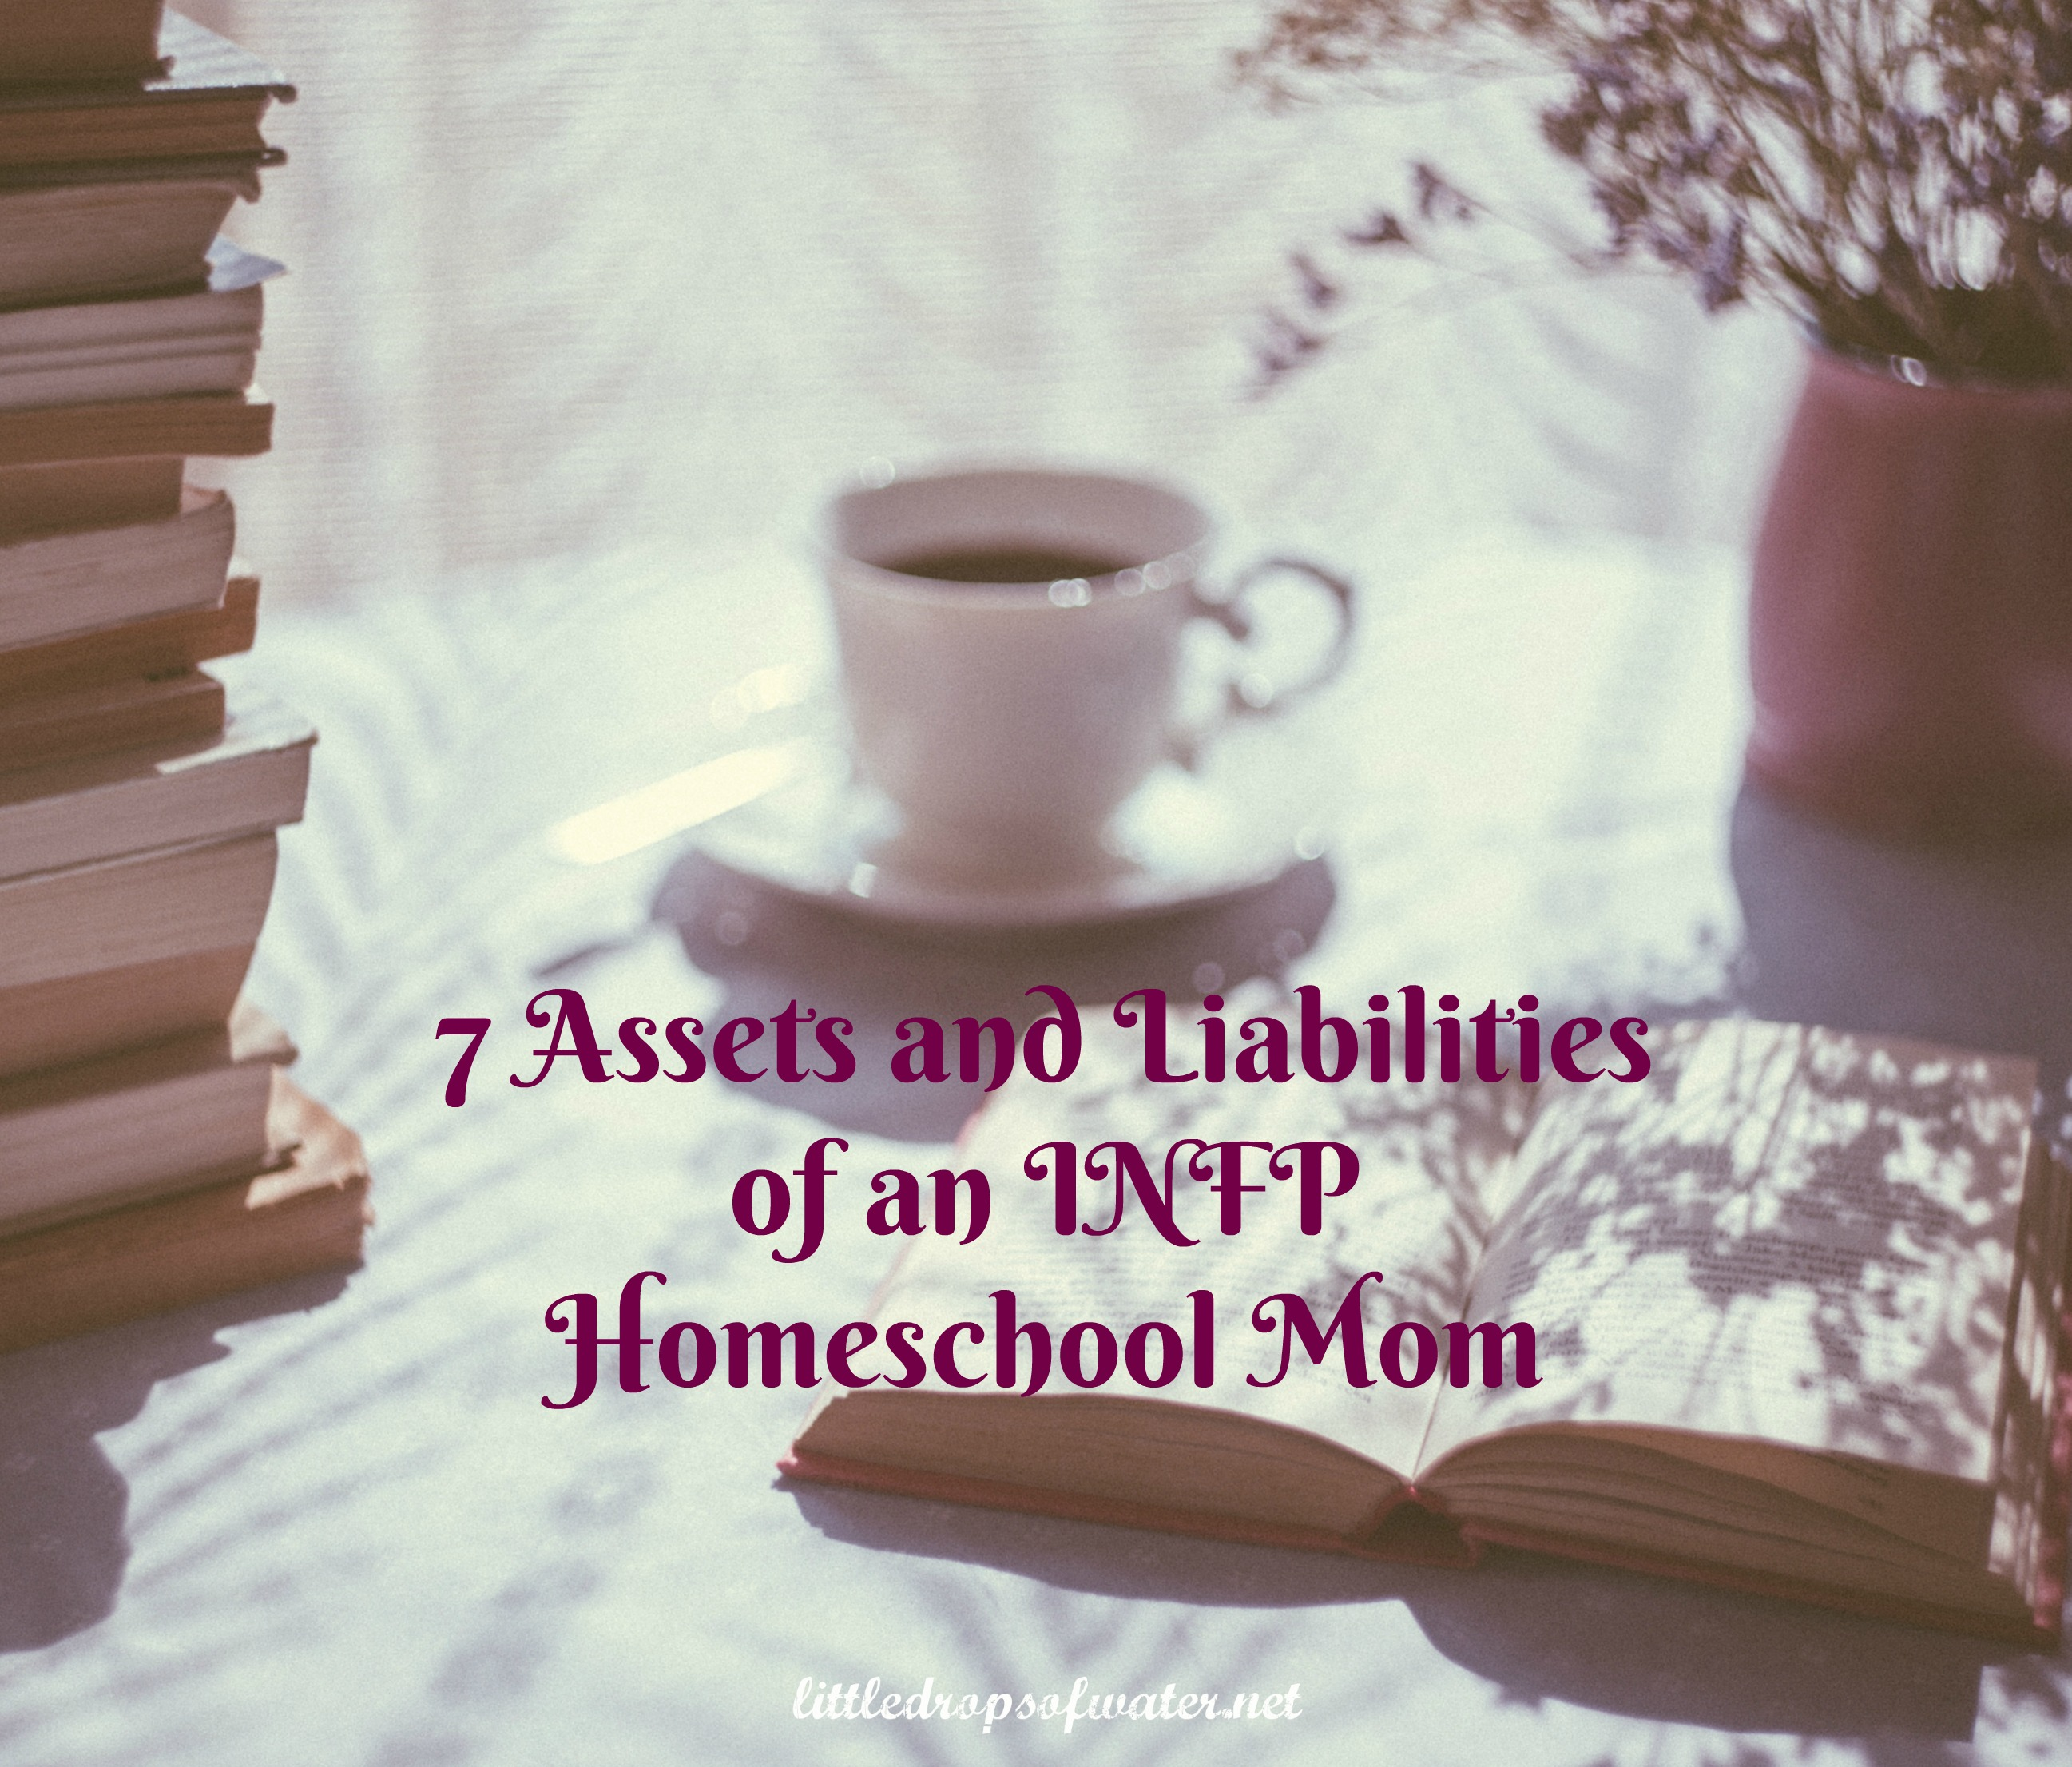 7 Assets and Liabilities of an INFP Homeschool Mom